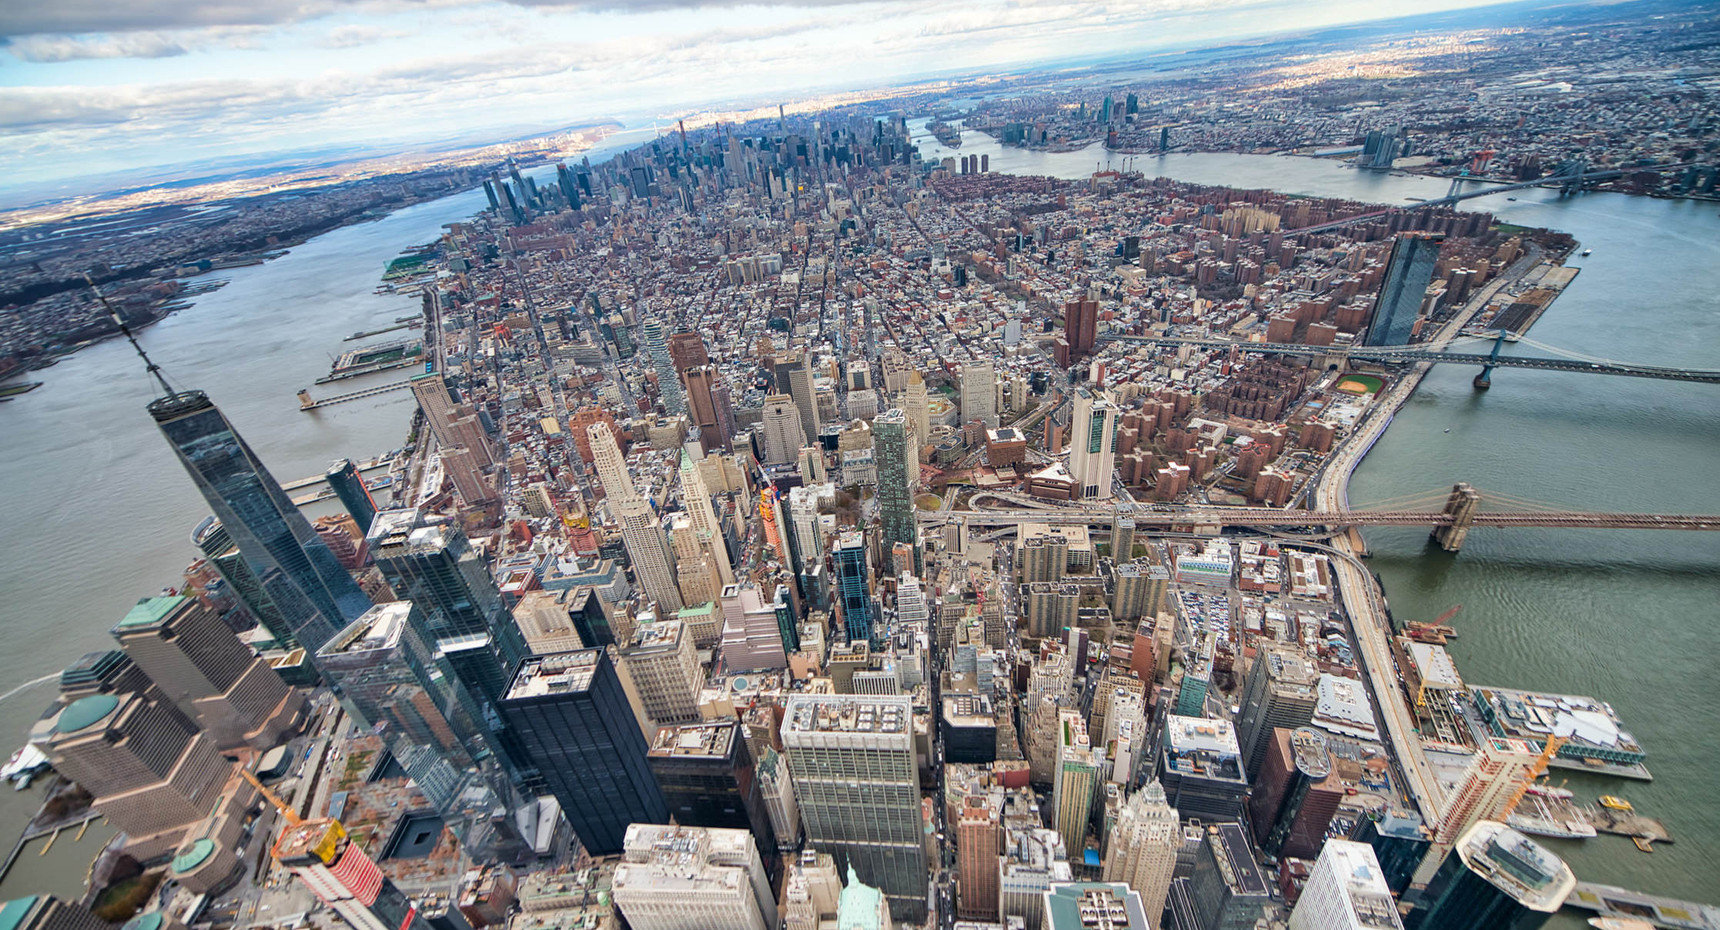 Helicopter view of Midtown Manhattan